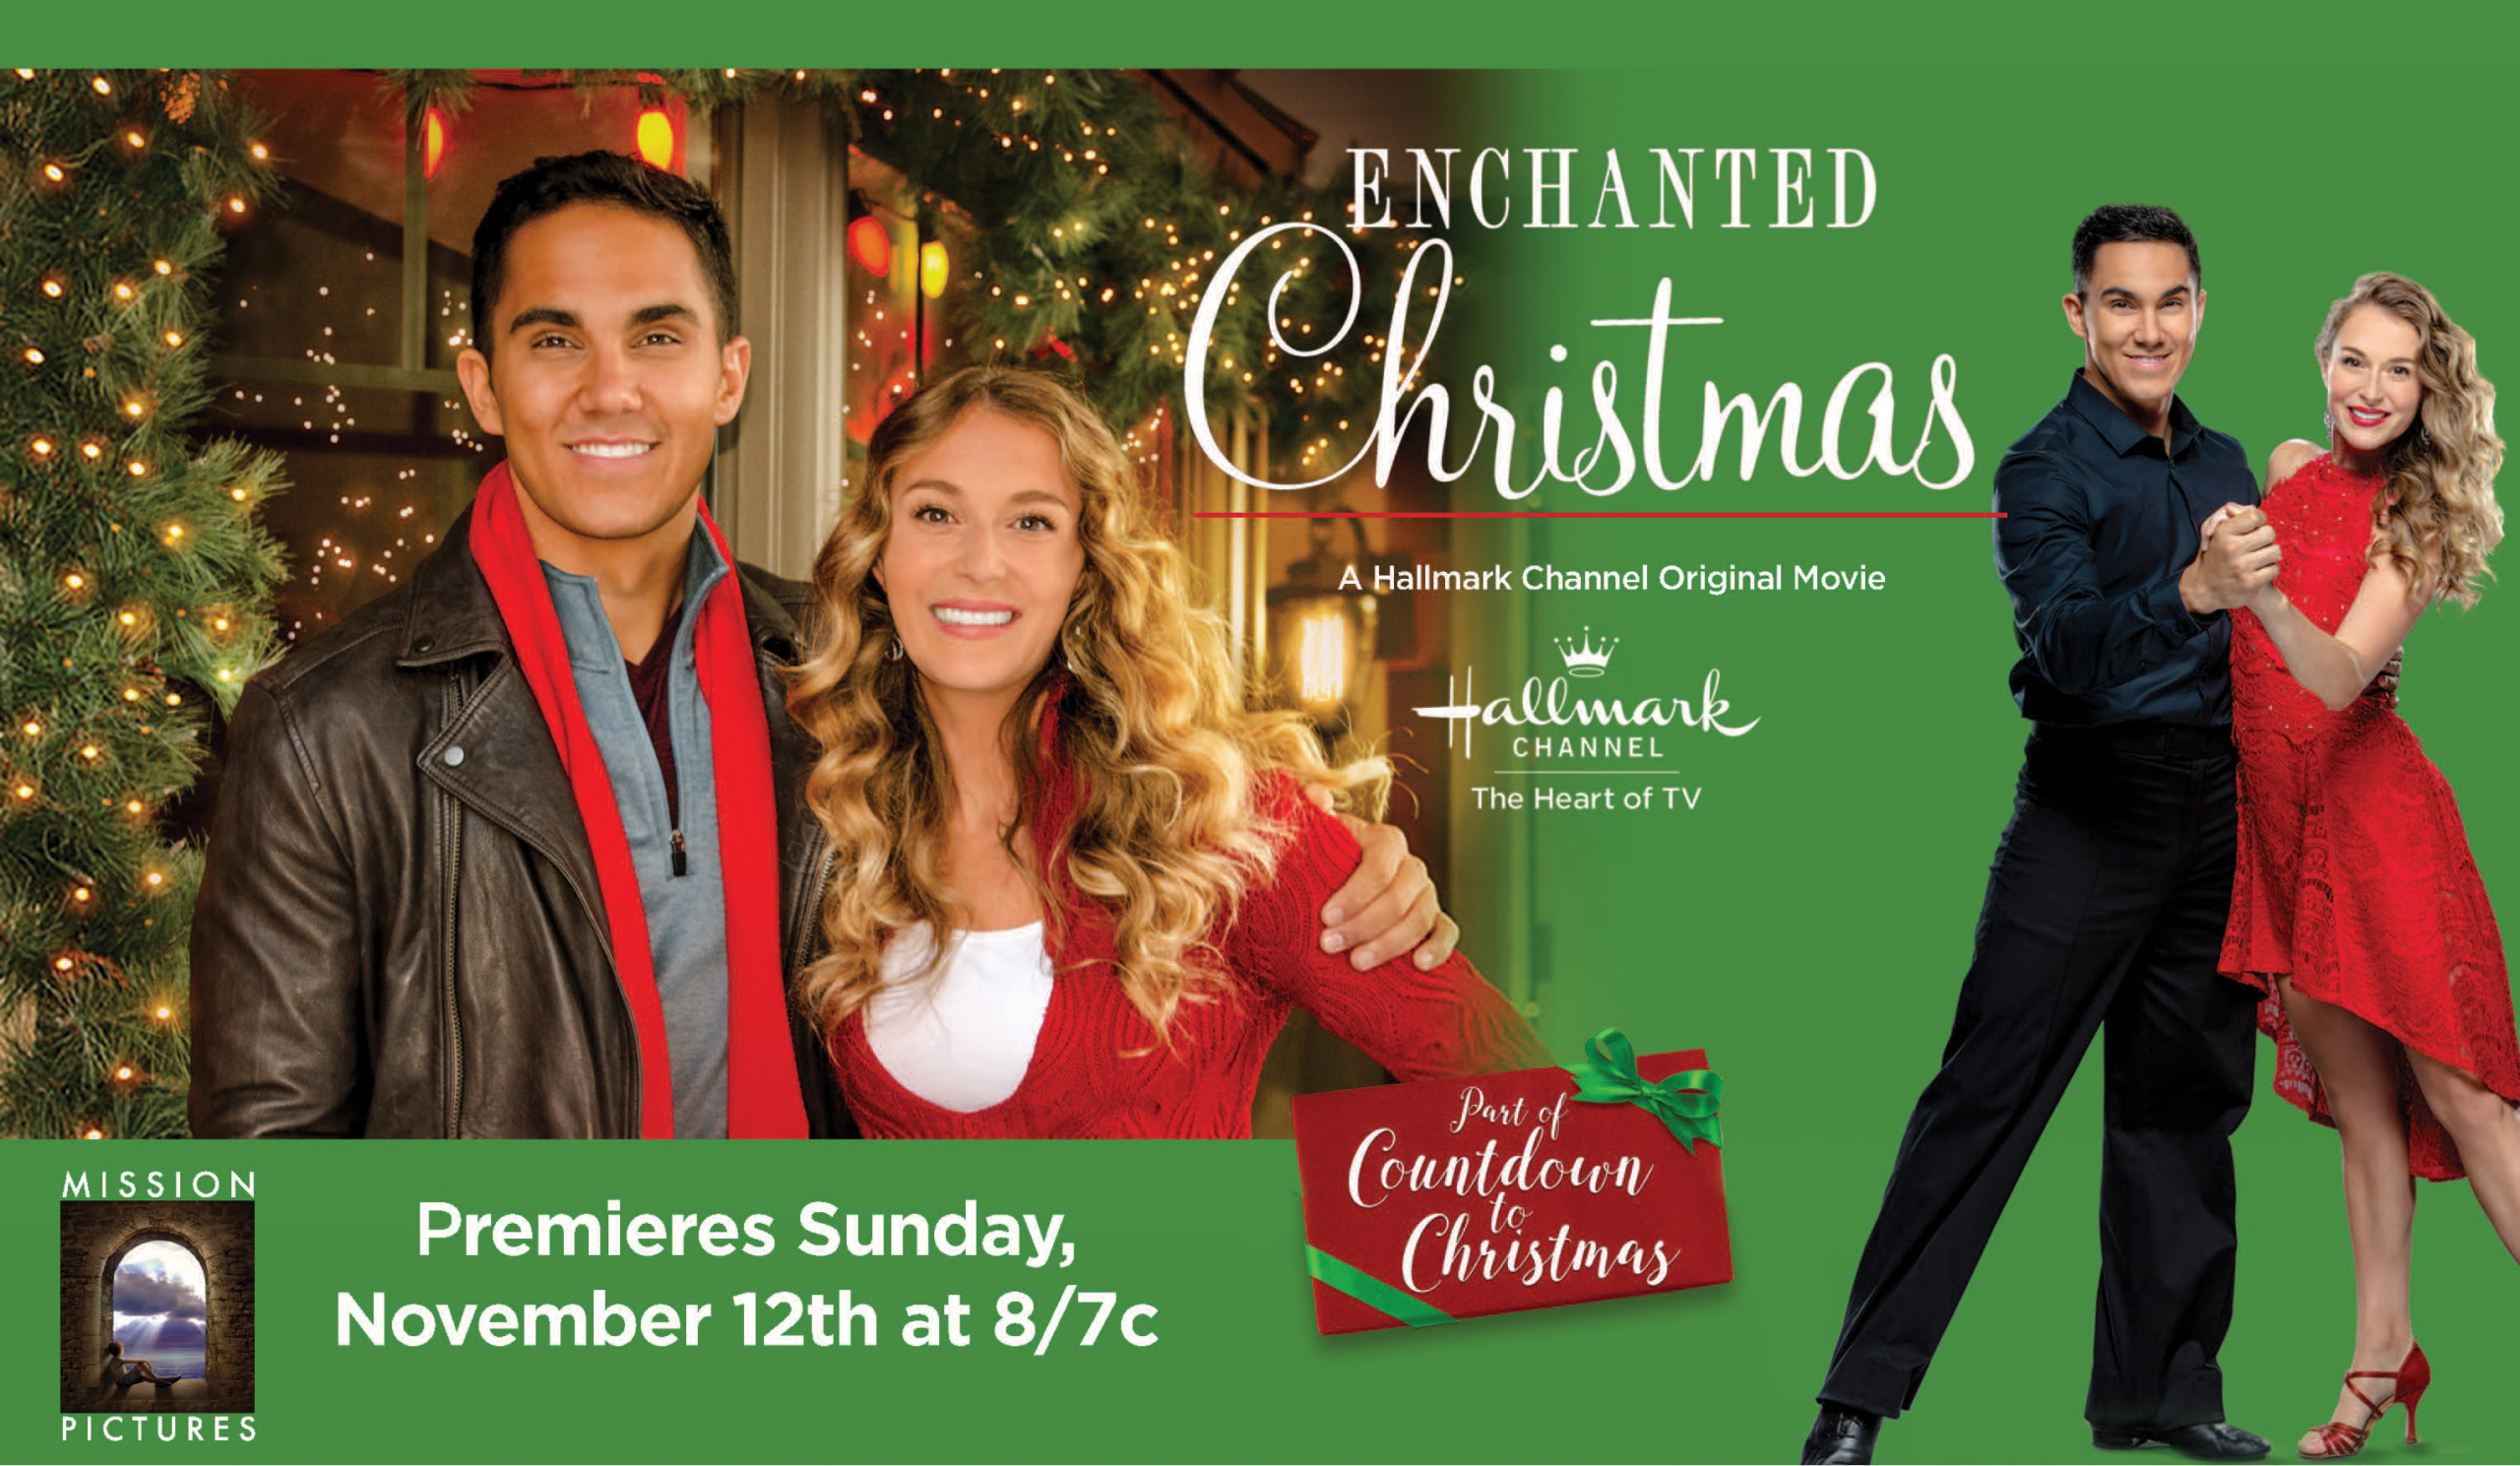 EXCLUSIVE interview with Carlos & Alexa PenaVega of Hallmark Channel's Enchanted Christmas